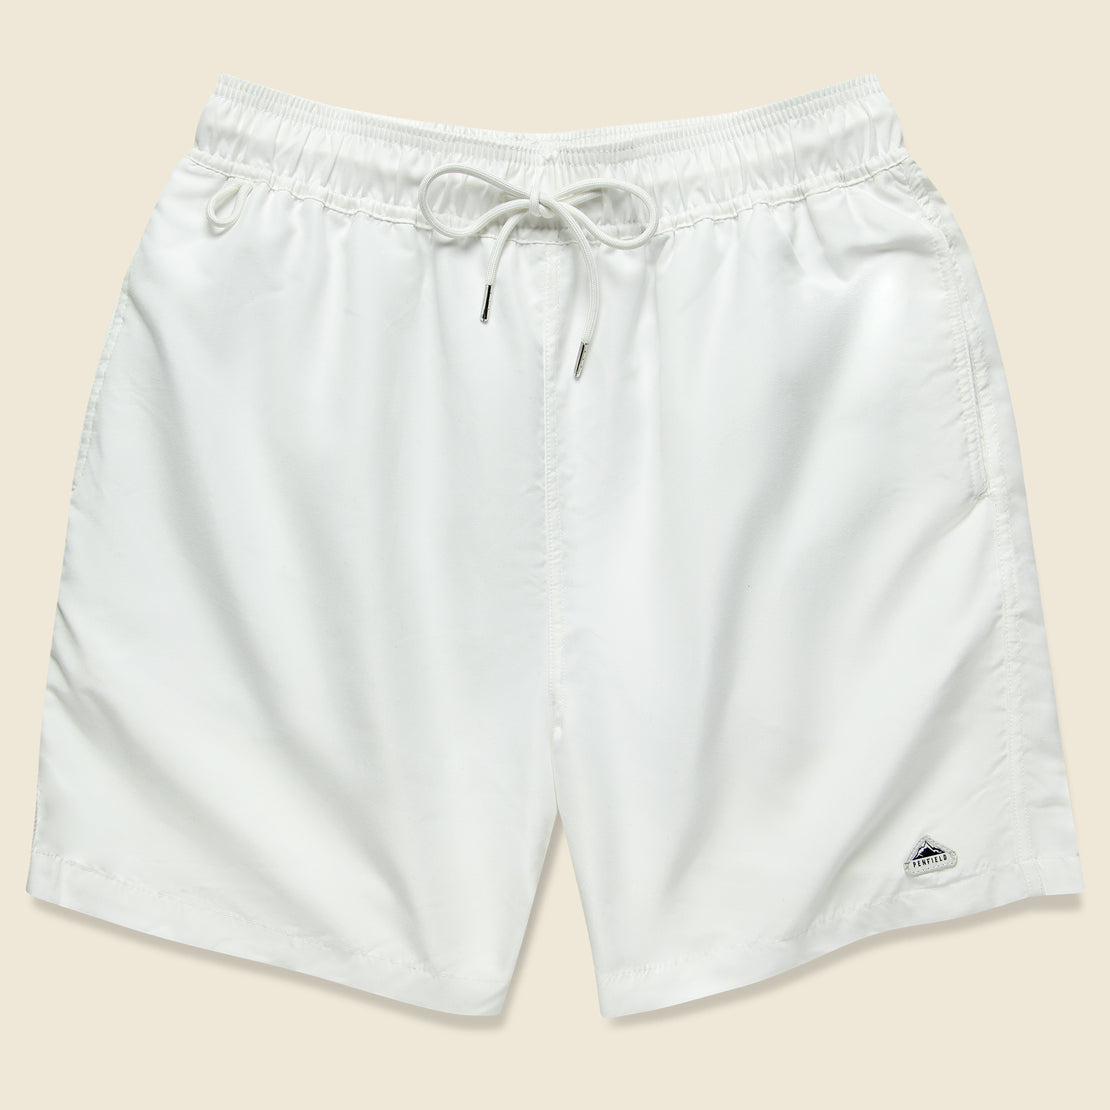 Penfield Seal Swim Trunk - White